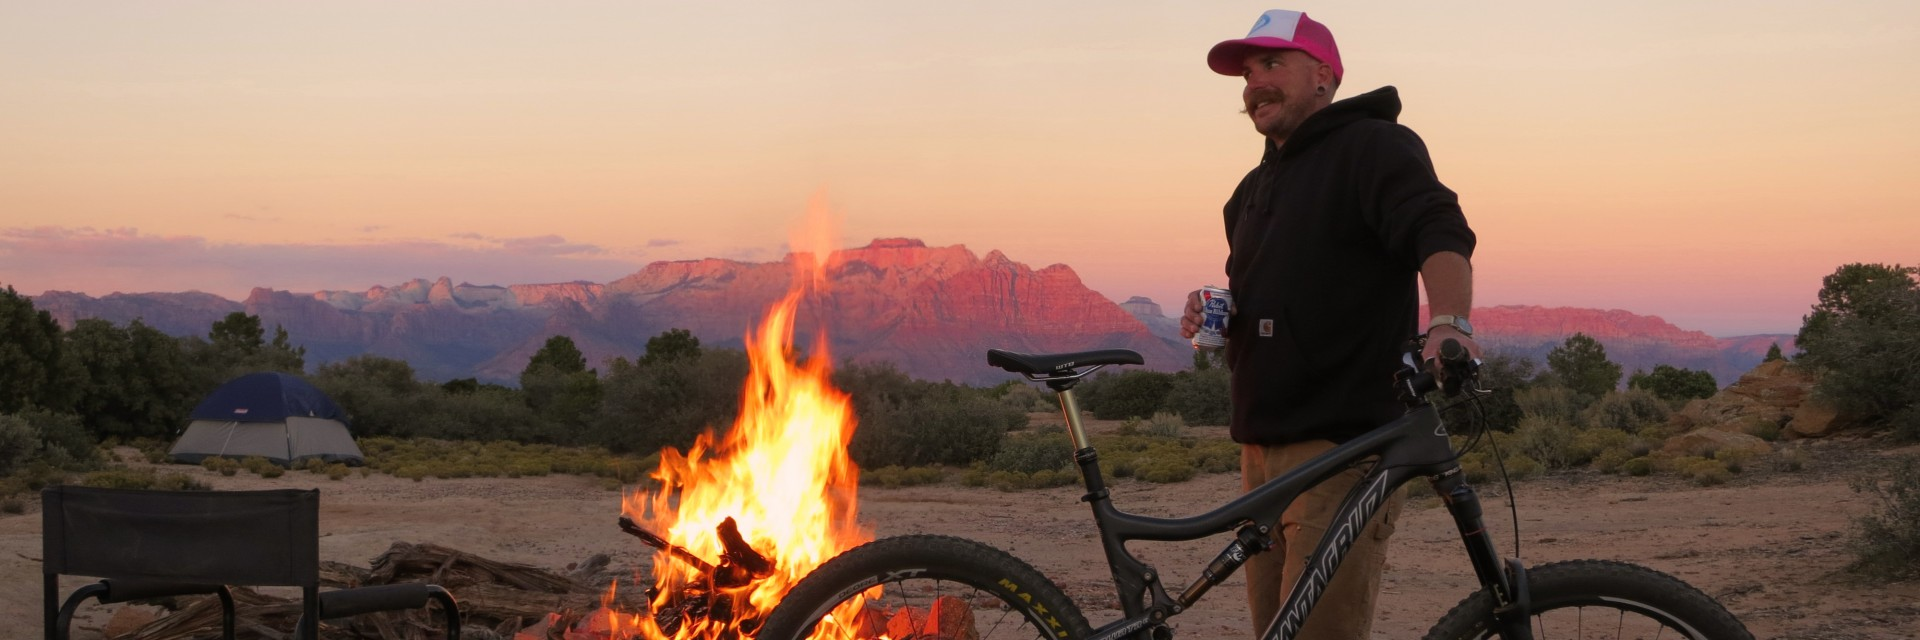 A guide enjoys a bonfire at sunset on a 4-day guided mountain bike tour of Gooseberry Mesa